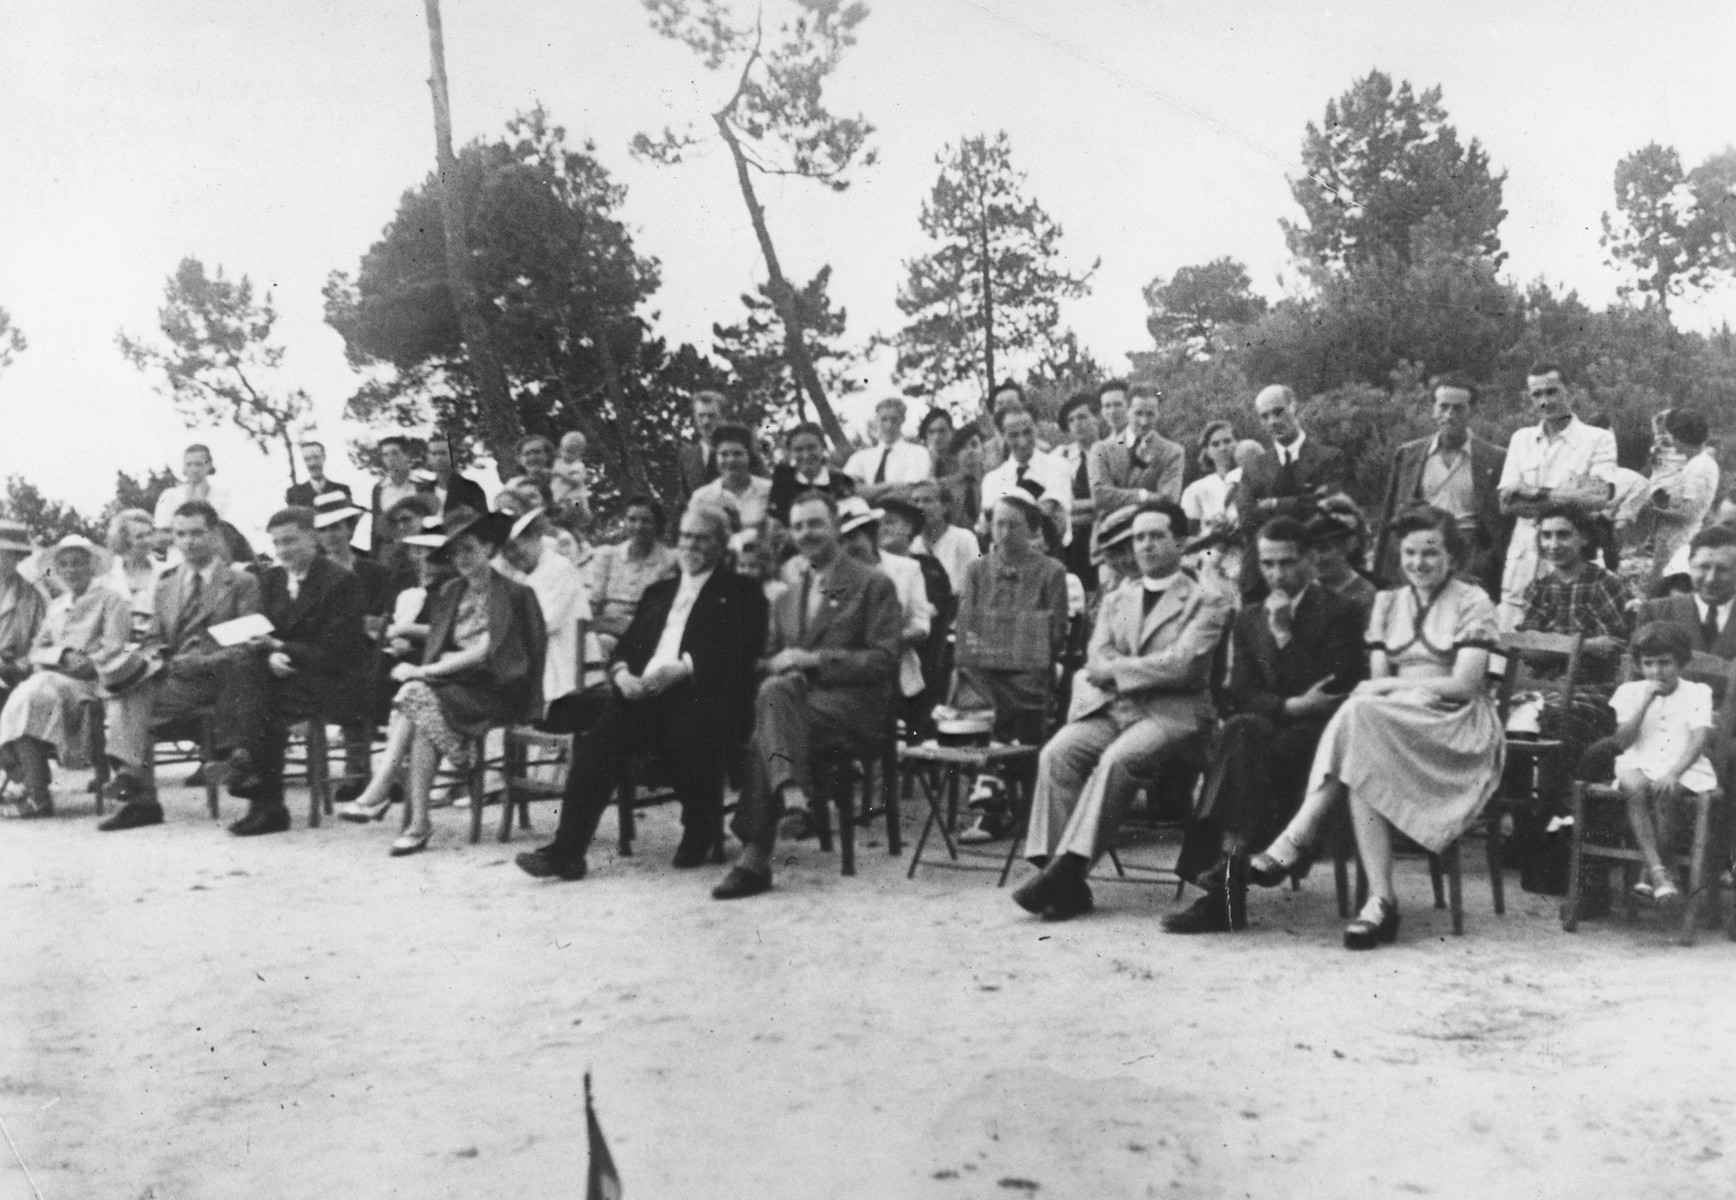 Inauguration of the MACE children's home in Vence.  Those pictureed include Colonel Henri Einesy, mayor of the town and protector of the home.